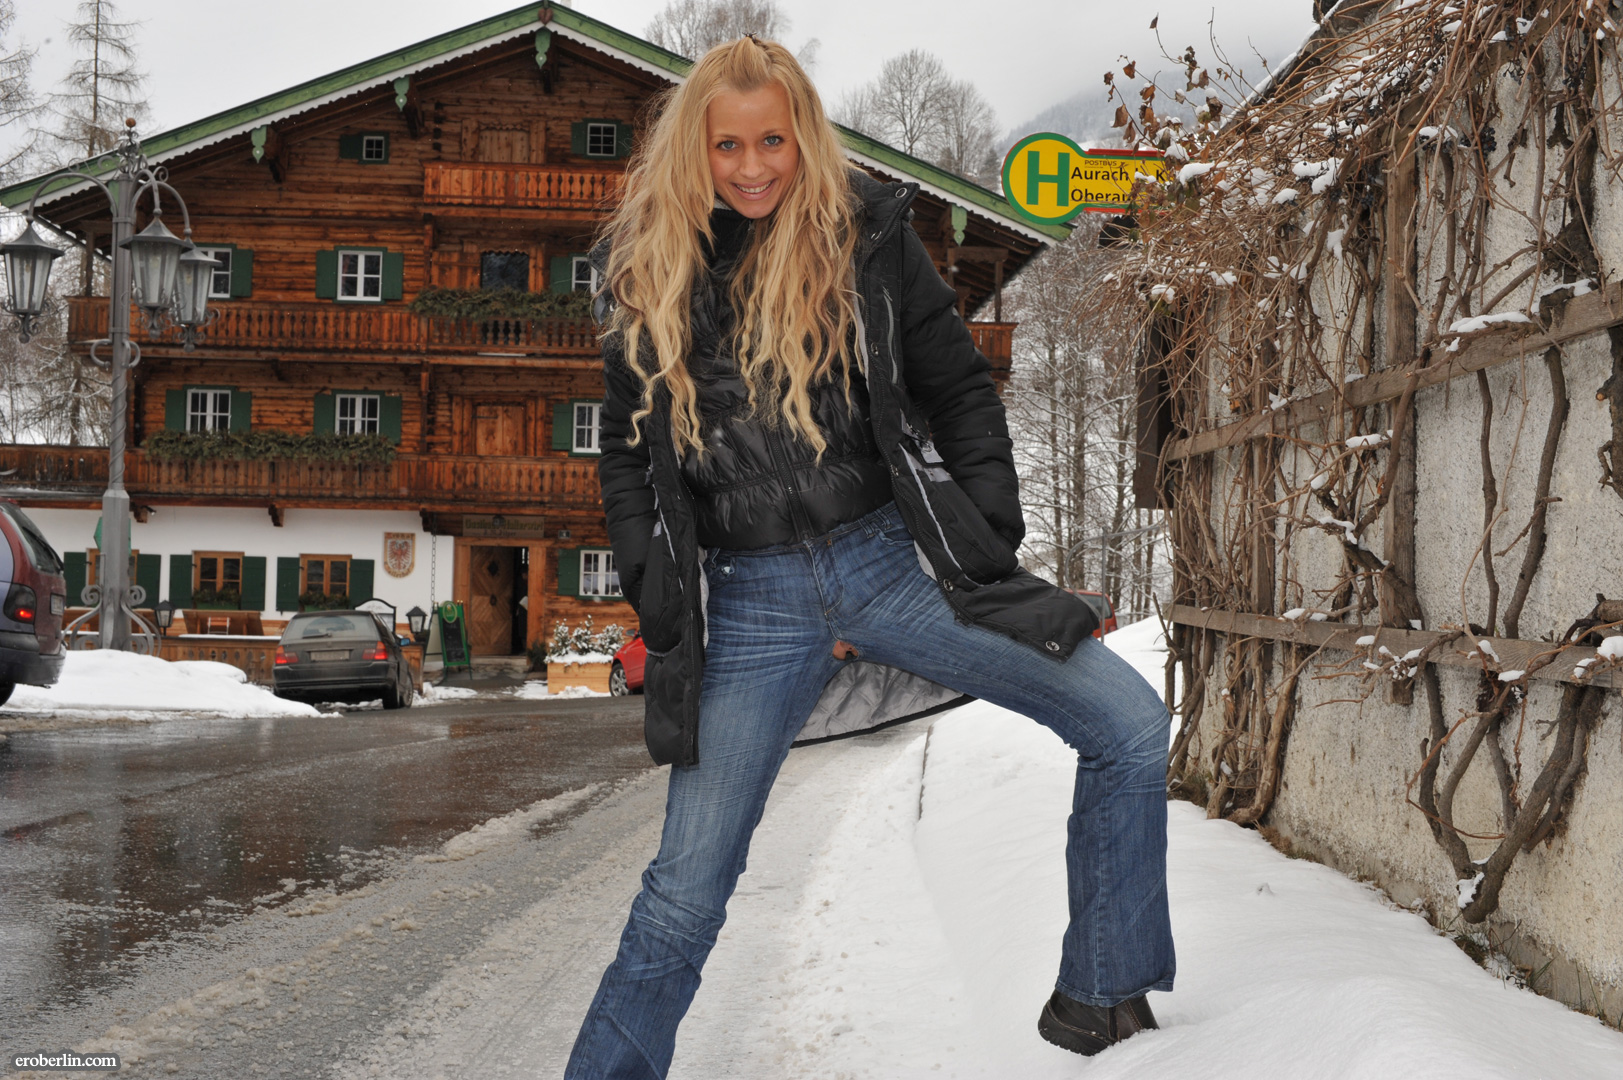 anna-safina-winter-flash-in-public-eroberlin-09